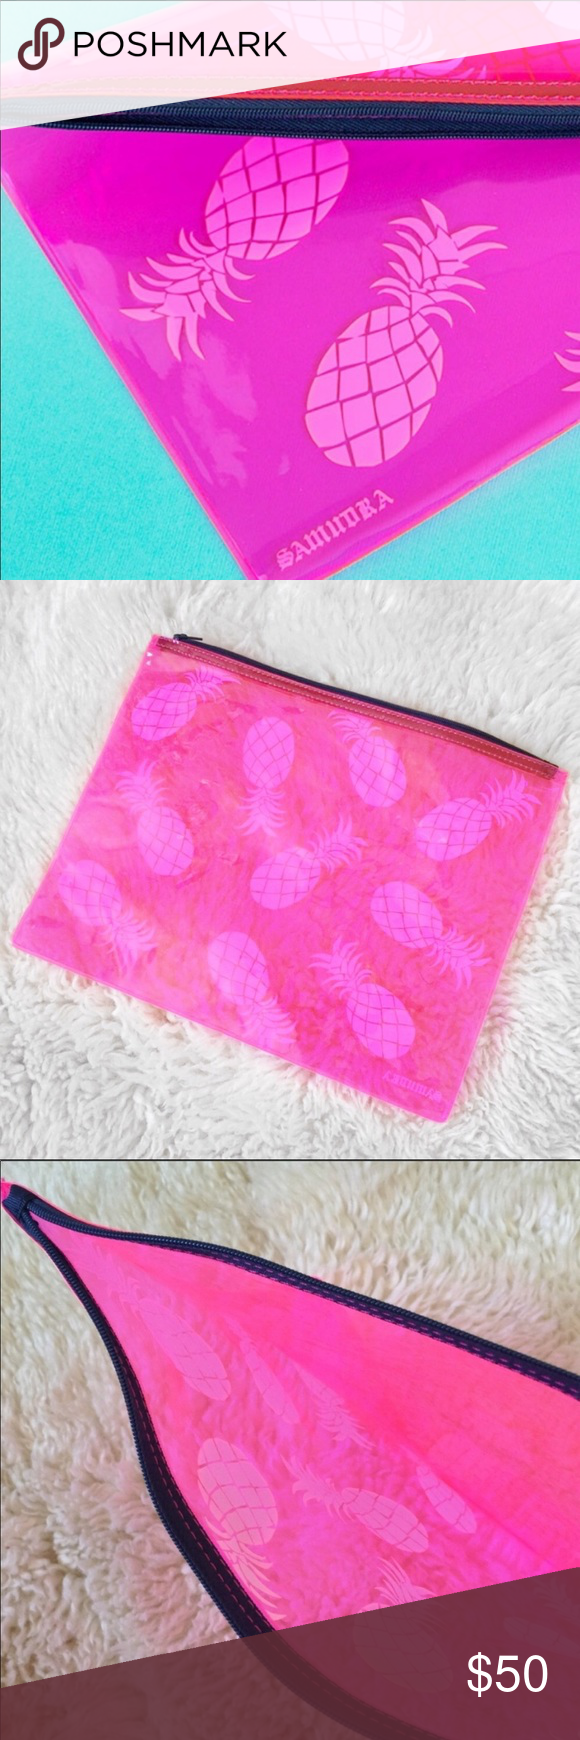 Saundra Pink Pineapple Zippered Travel Pouch NWOT Saundra